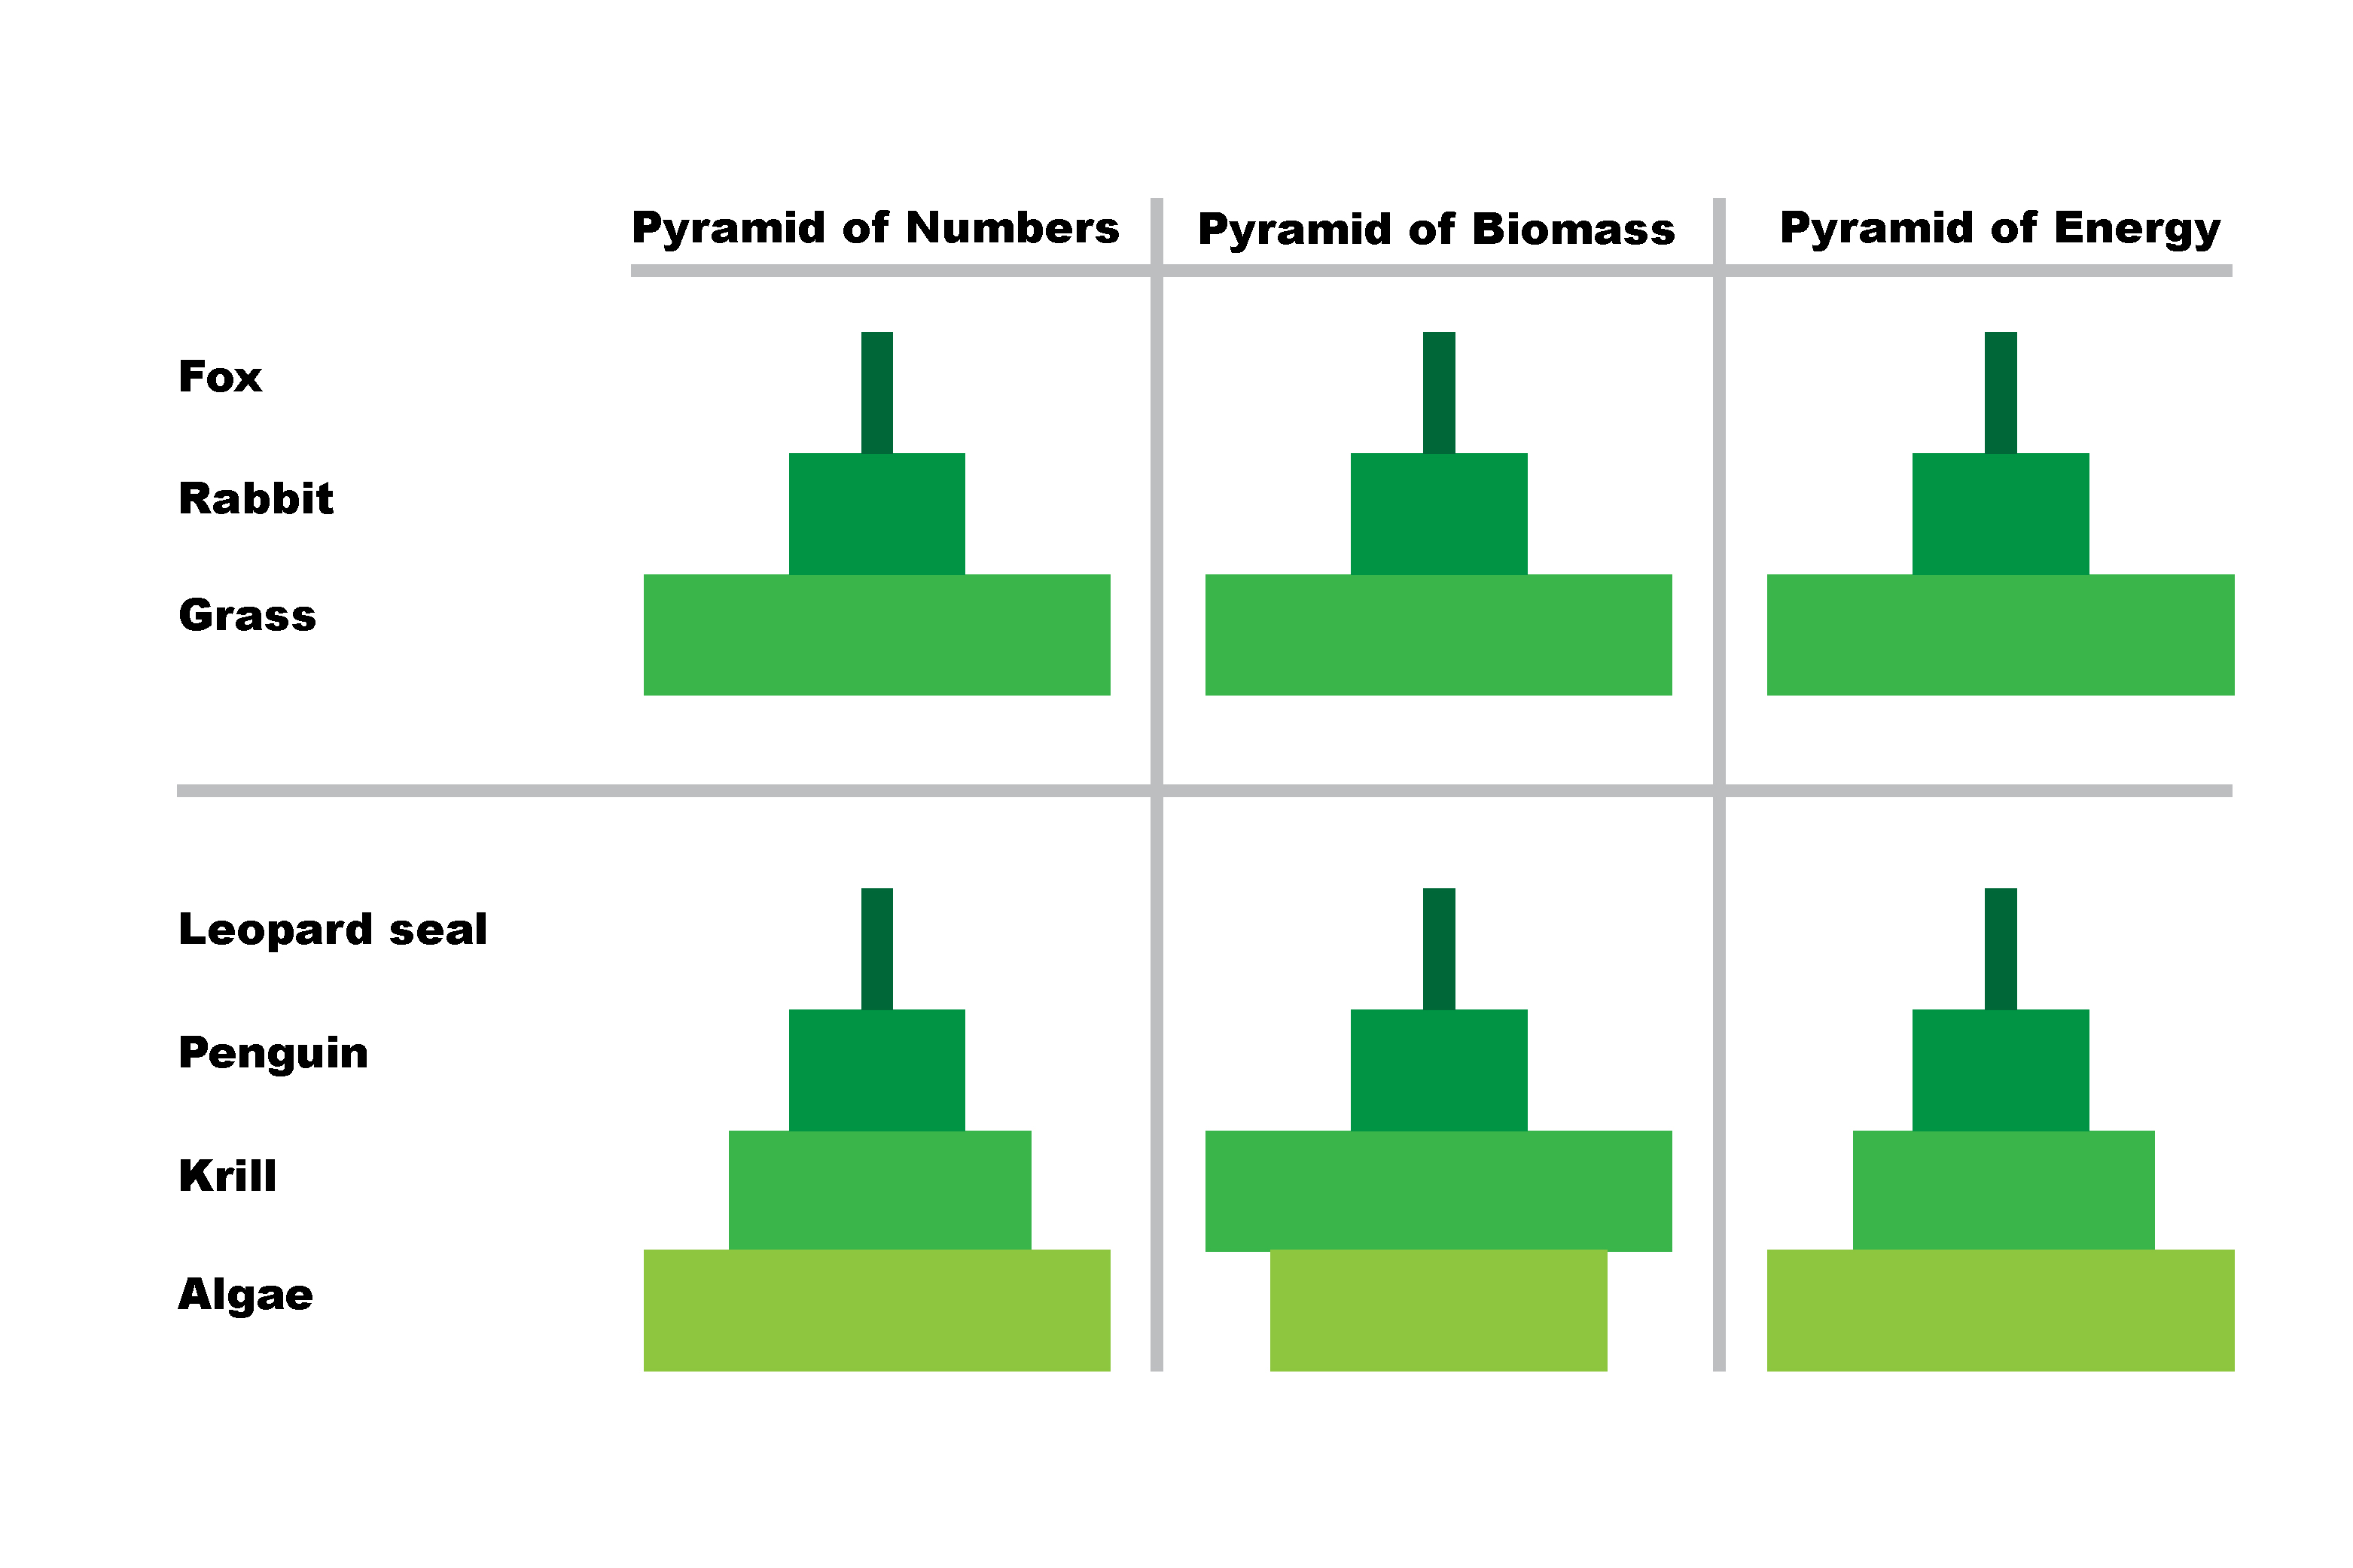 Biomass is the total mass multiplied by the population